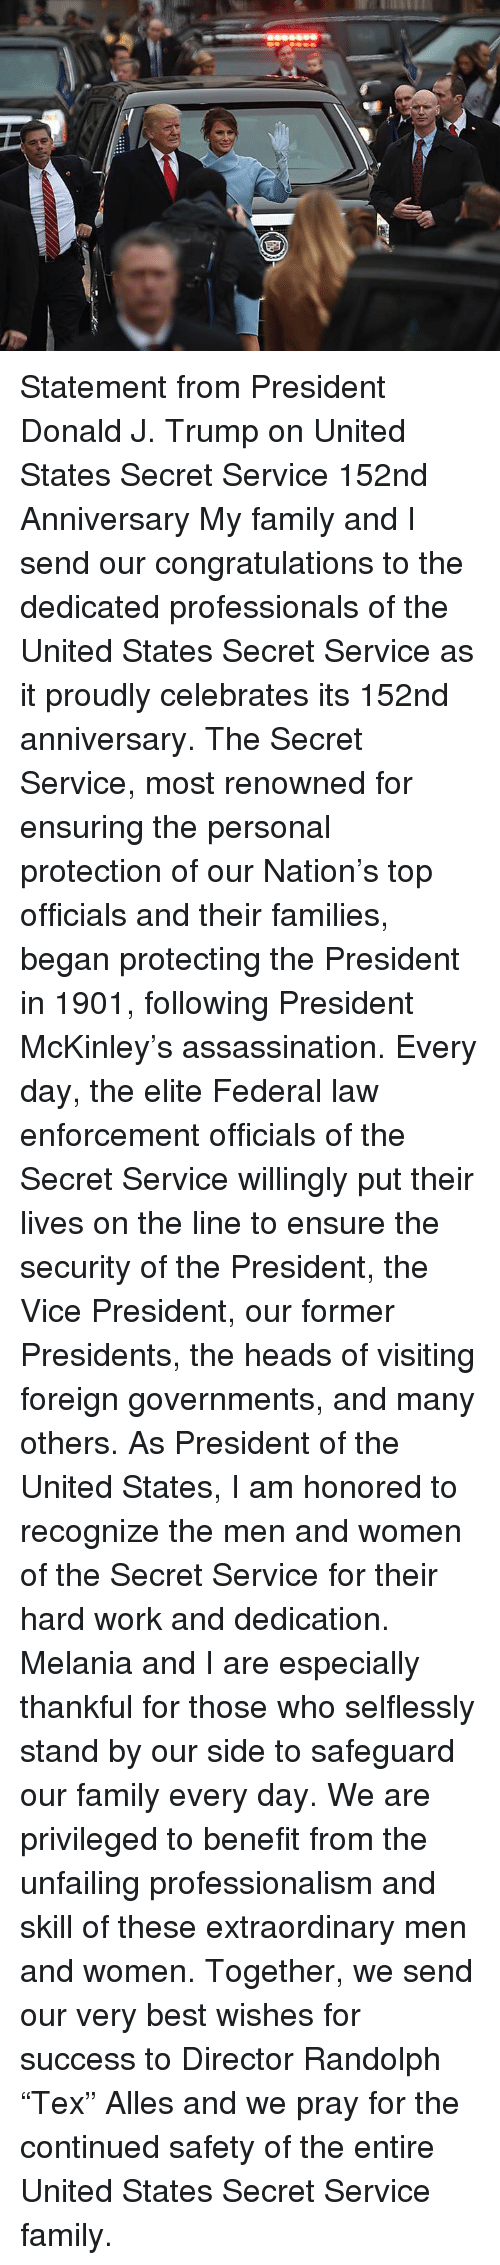 """Assassination, Family, and Work: Statement from President Donald J. Trump on United States Secret Service 152nd Anniversary  My family and I send our congratulations to the dedicated professionals of the United States Secret Service as it proudly celebrates its 152nd anniversary.  The Secret Service, most renowned for ensuring the personal protection of our Nation's top officials and their families, began protecting the President in 1901, following President McKinley's assassination.  Every day, the elite Federal law enforcement officials of the Secret Service willingly put their lives on the line to ensure the security of the President, the Vice President, our former Presidents, the heads of visiting foreign governments, and many others.   As President of the United States, I am honored to recognize the men and women of the Secret Service for their hard work and dedication.  Melania and I are especially thankful for those who selflessly stand by our side to safeguard our family every day.  We are privileged to benefit from the unfailing professionalism and skill of these extraordinary men and women.  Together, we send our very best wishes for success to Director Randolph """"Tex"""" Alles and we pray for the continued safety of the entire United States Secret Service family."""